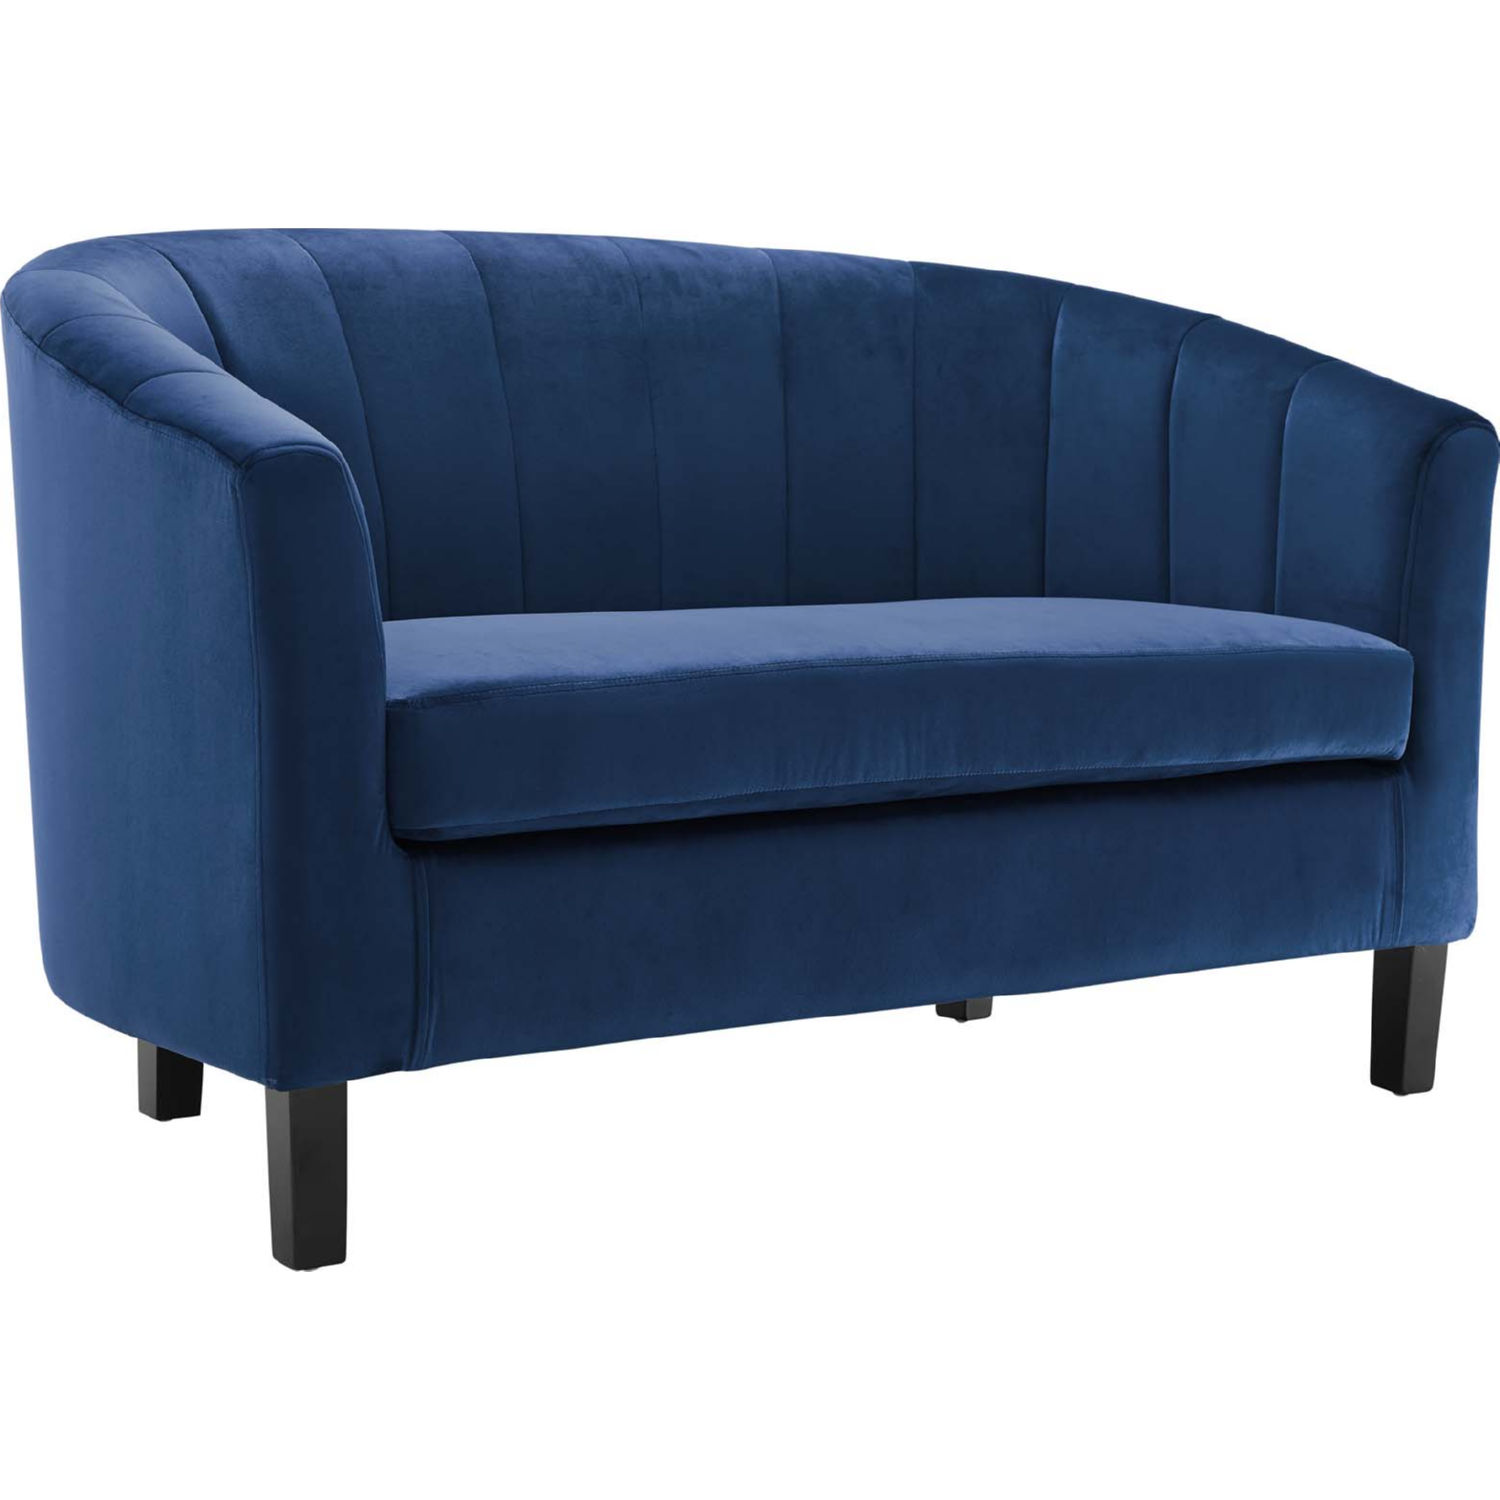 Magnificent Prospect Loveseat In Channel Tufted Navy Blue Velvet By Modway Squirreltailoven Fun Painted Chair Ideas Images Squirreltailovenorg